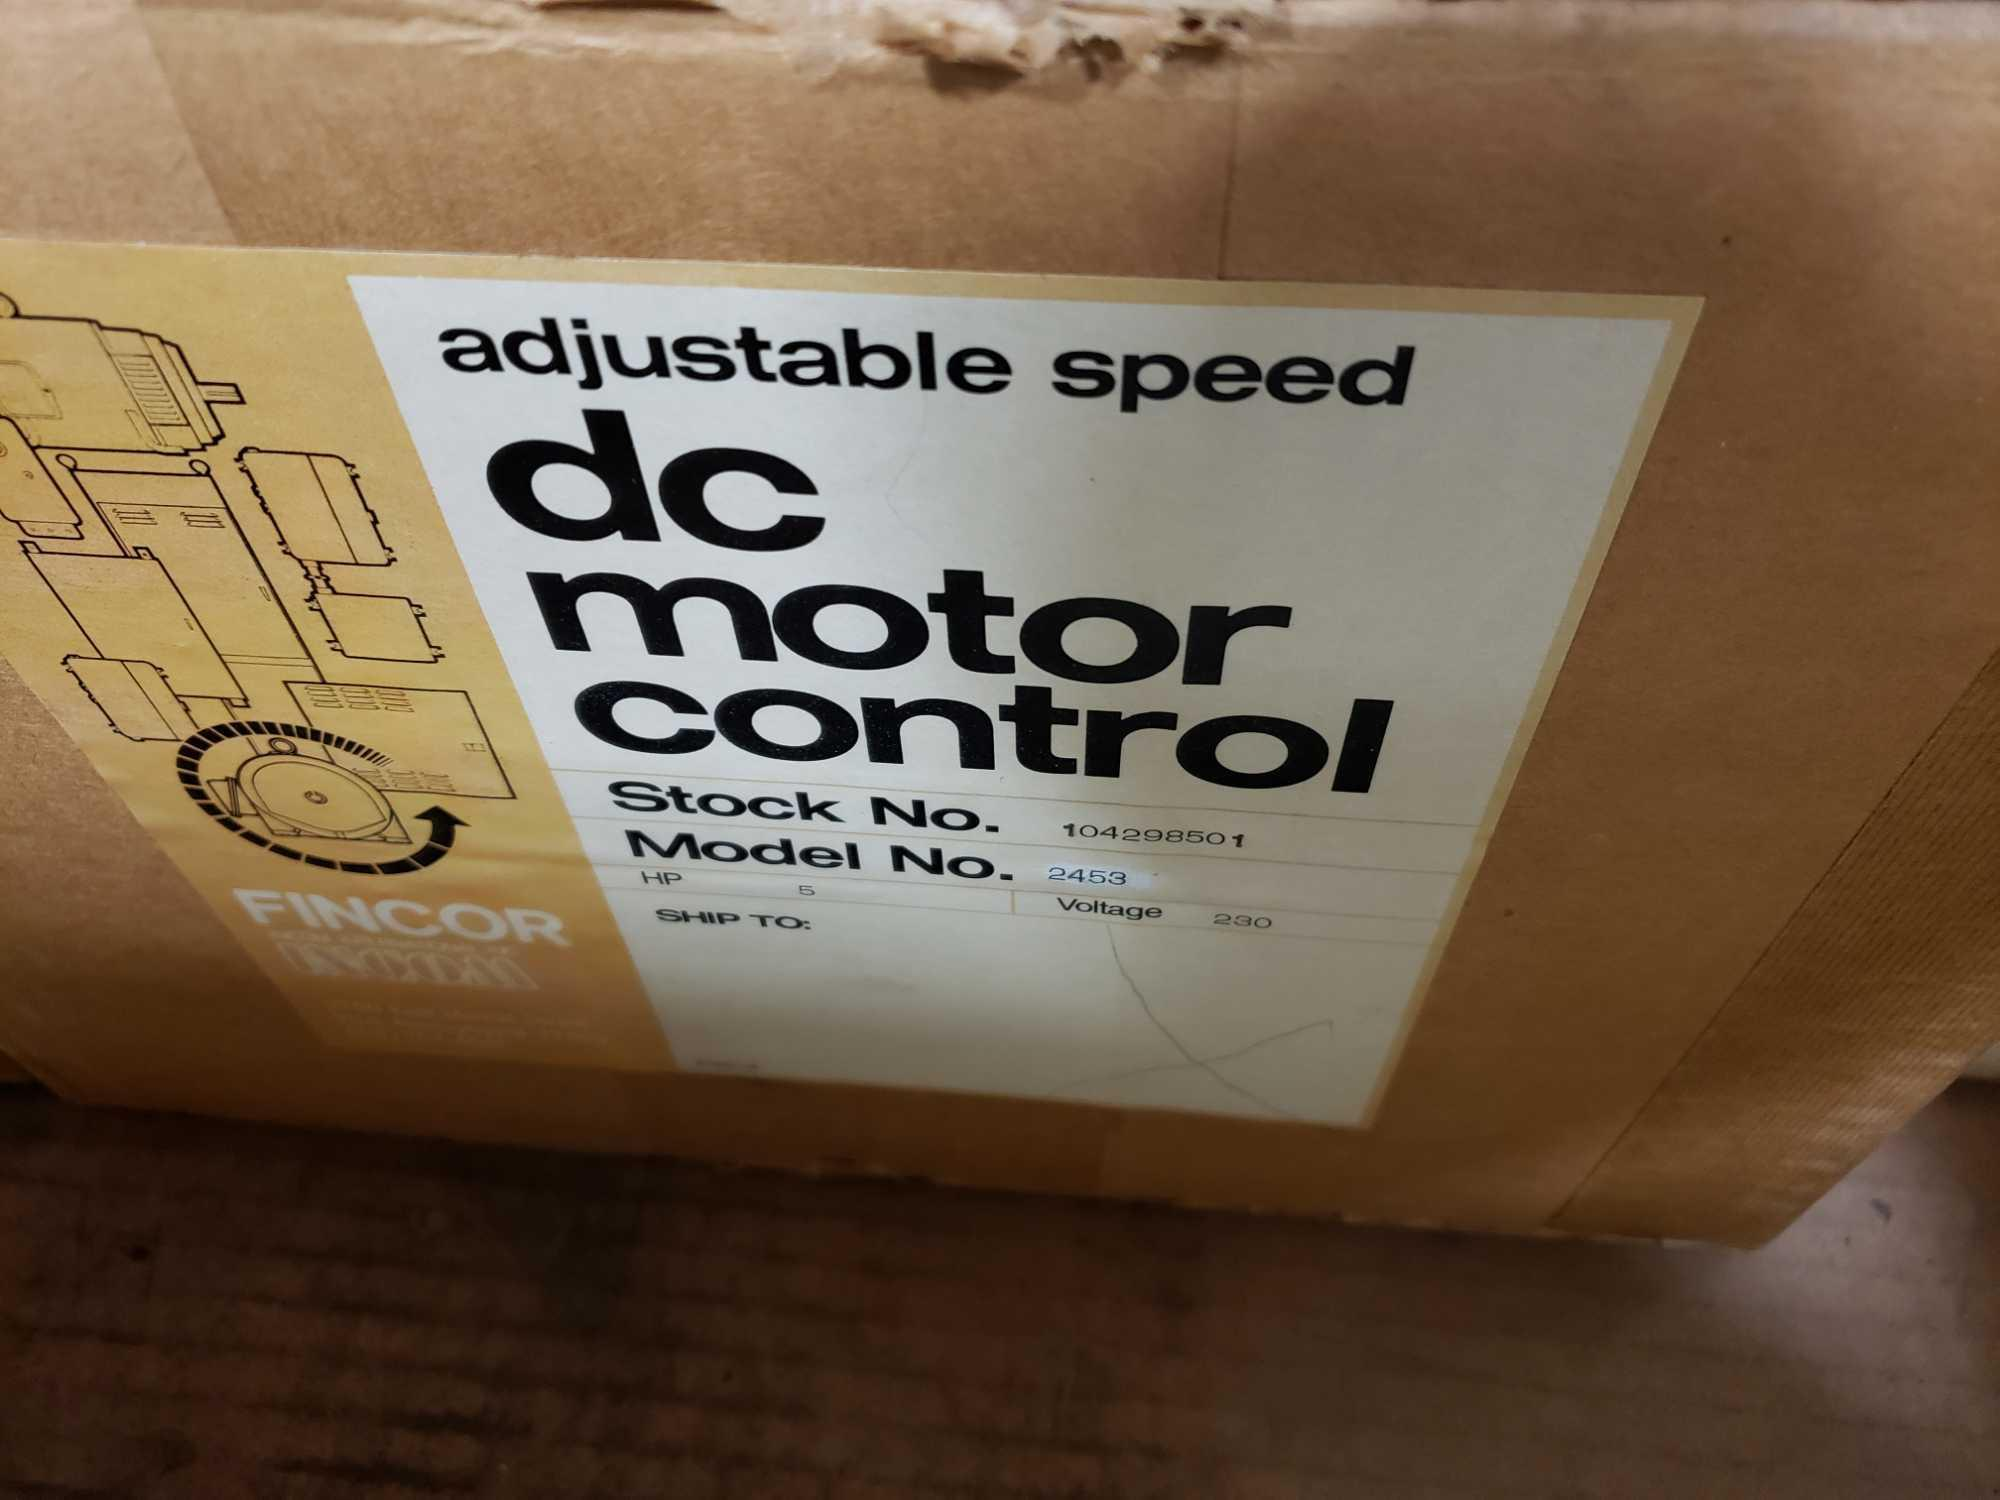 Fincor DC motor control model 2450 MKII part number 2453, 5hp 230v. New in box. - Image 2 of 3